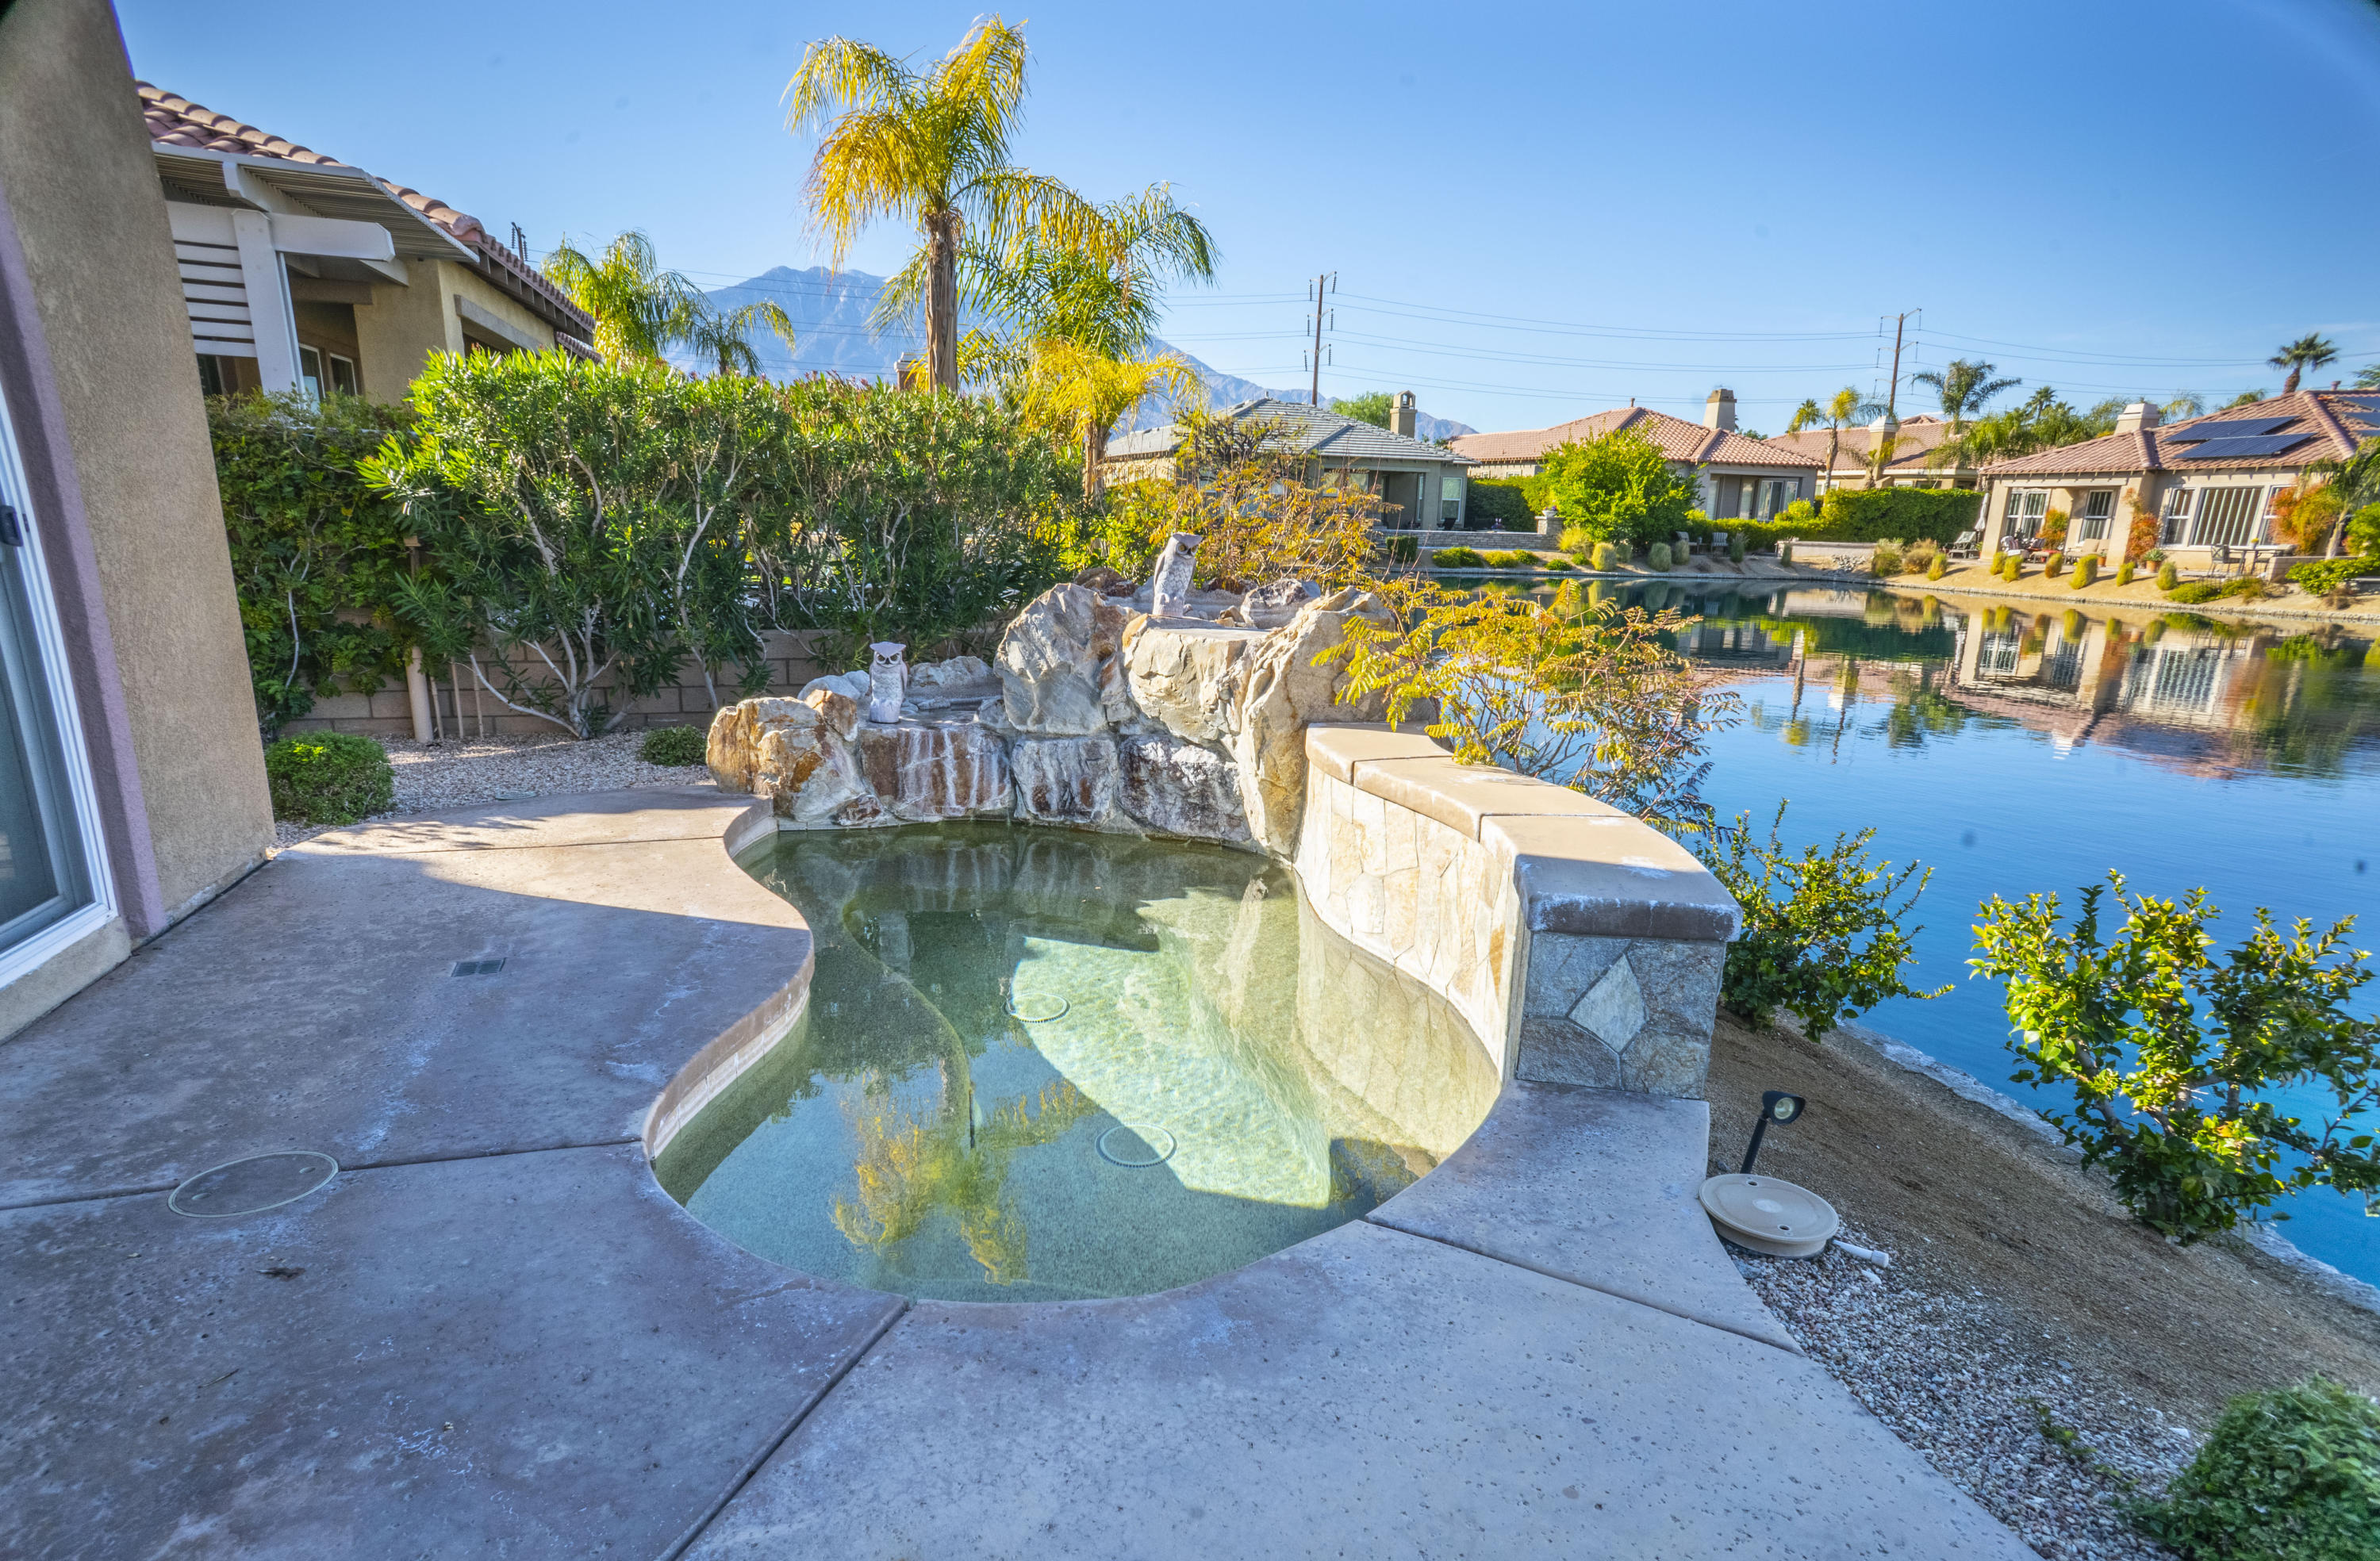 10 Loch Ness Lake Court, Rancho Mirage, California 92270, 3 Bedrooms Bedrooms, ,3 BathroomsBathrooms,Residential,For Sale,10 Loch Ness Lake Court,219036789